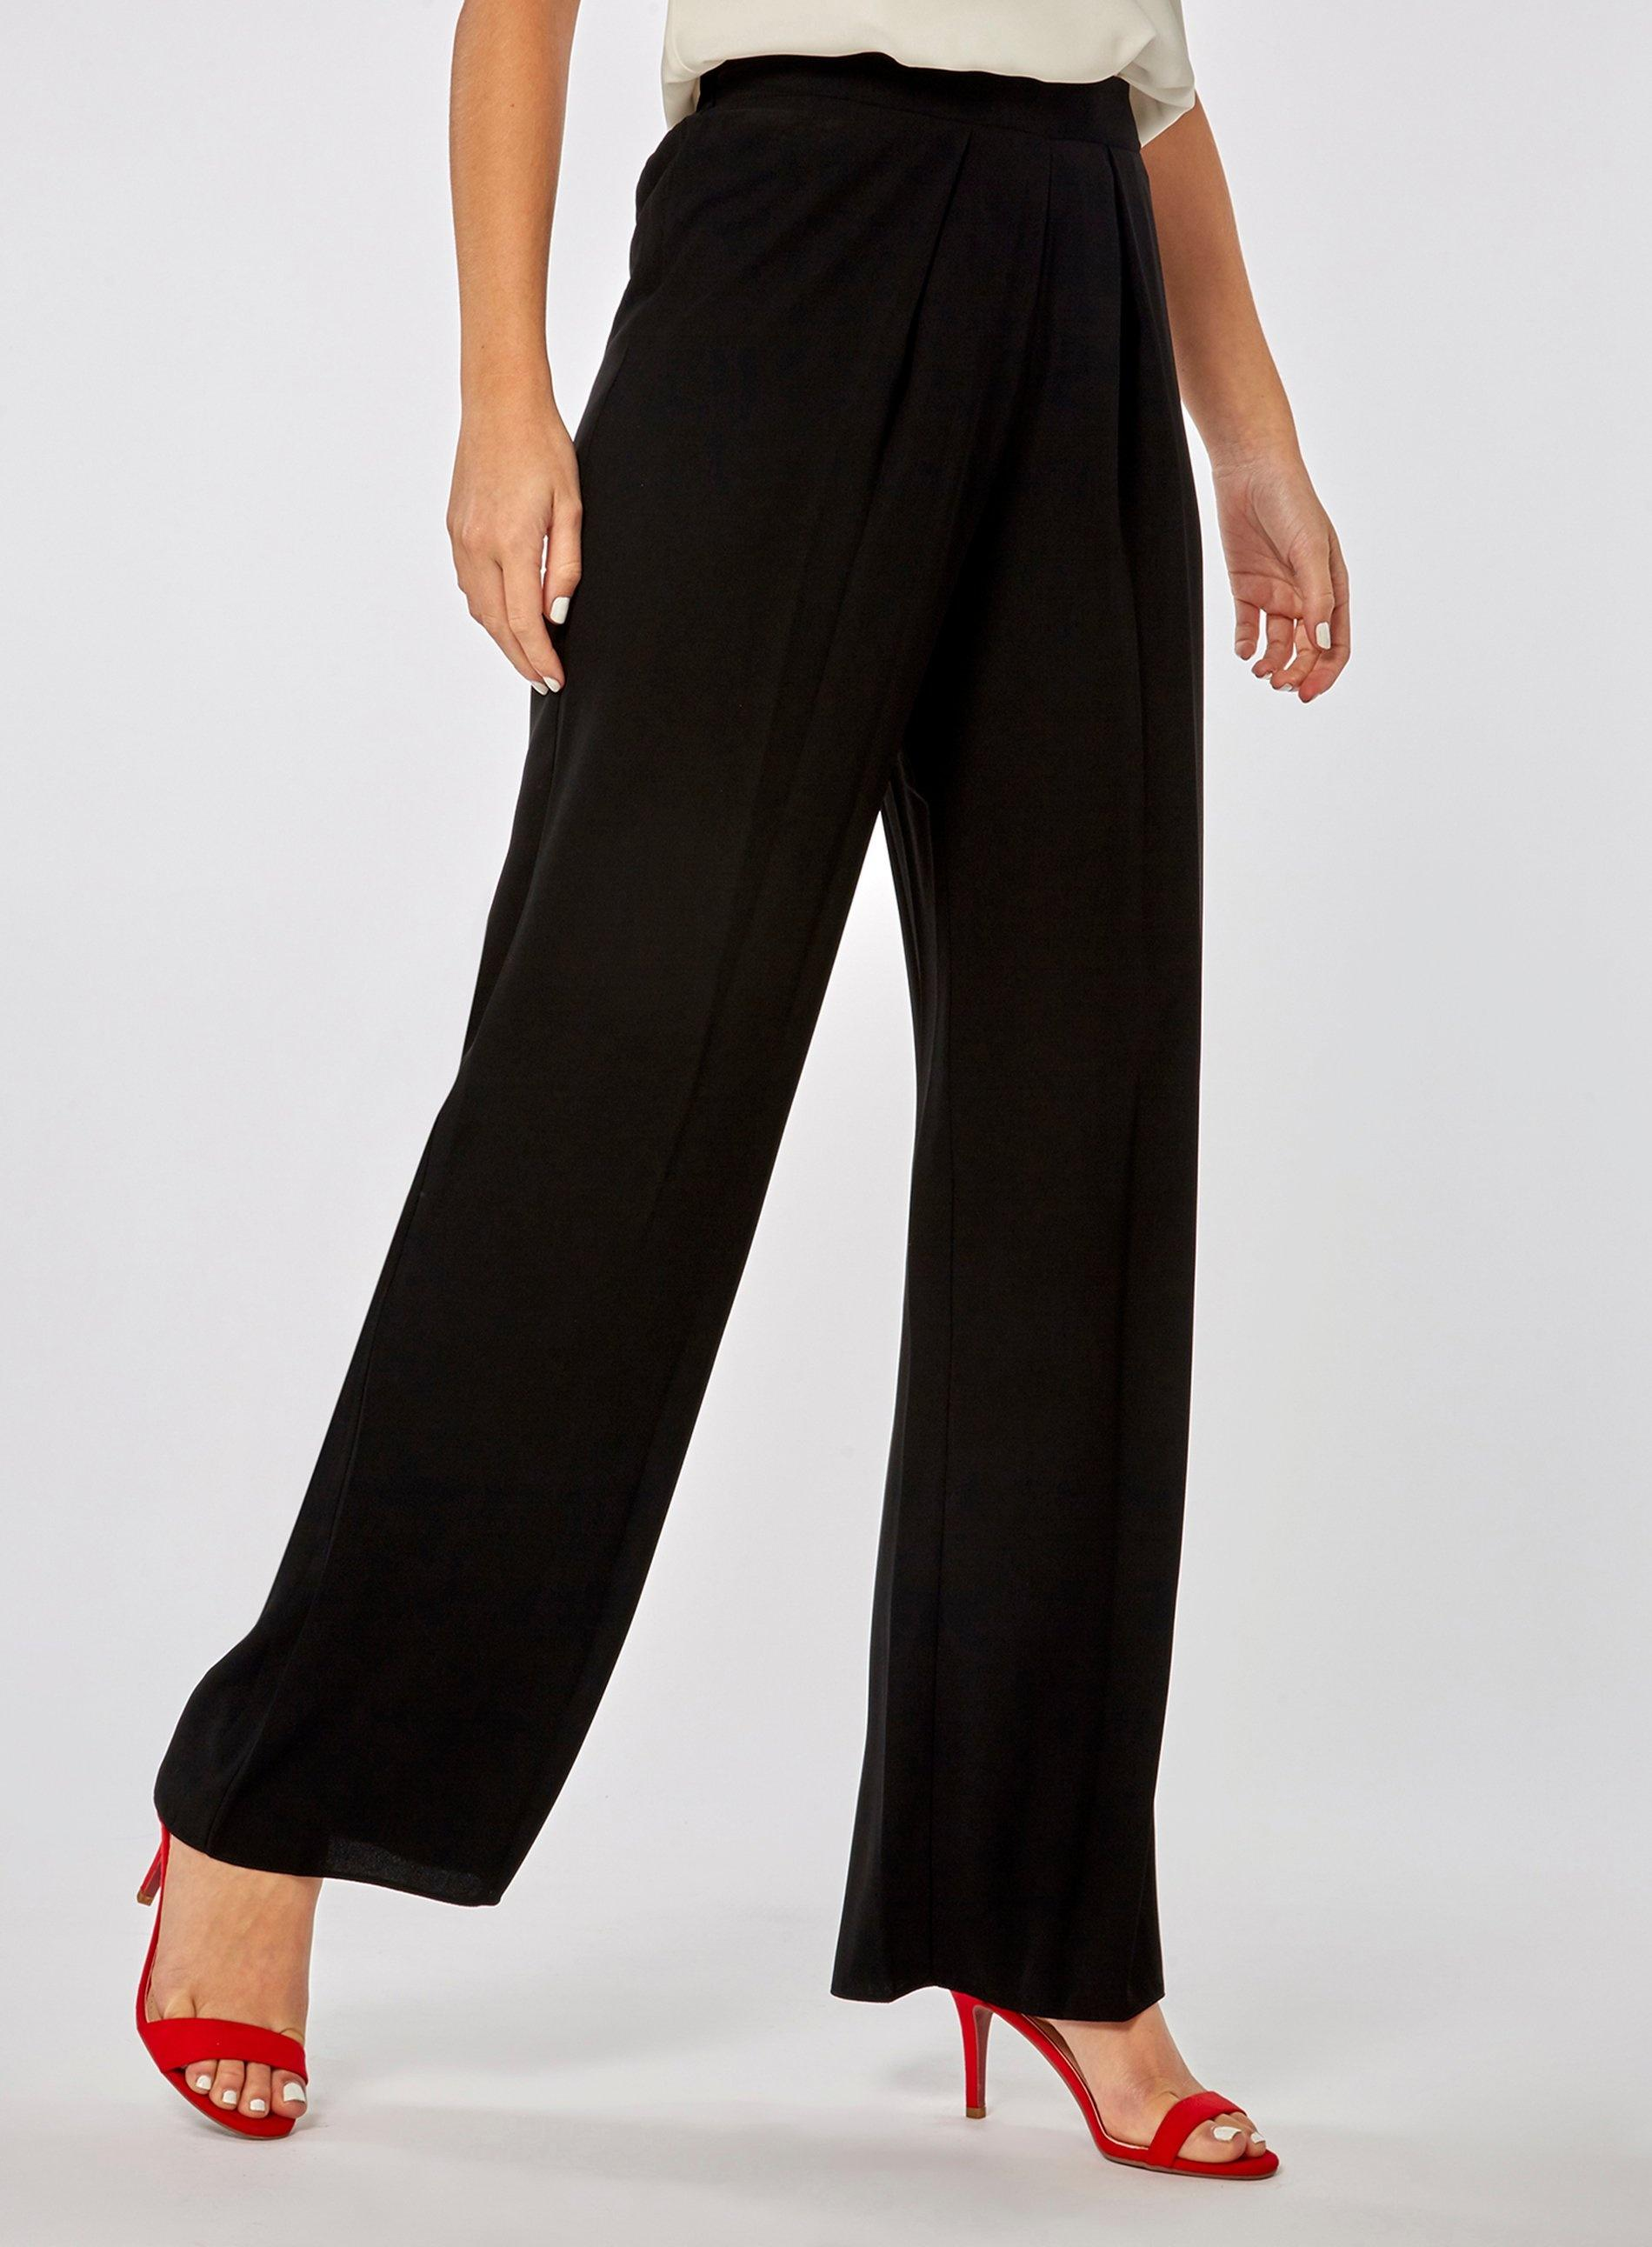 172511d36256d ... Black Palazzo Trousers - Lyst. Visit Dorothy Perkins. Tap to visit site